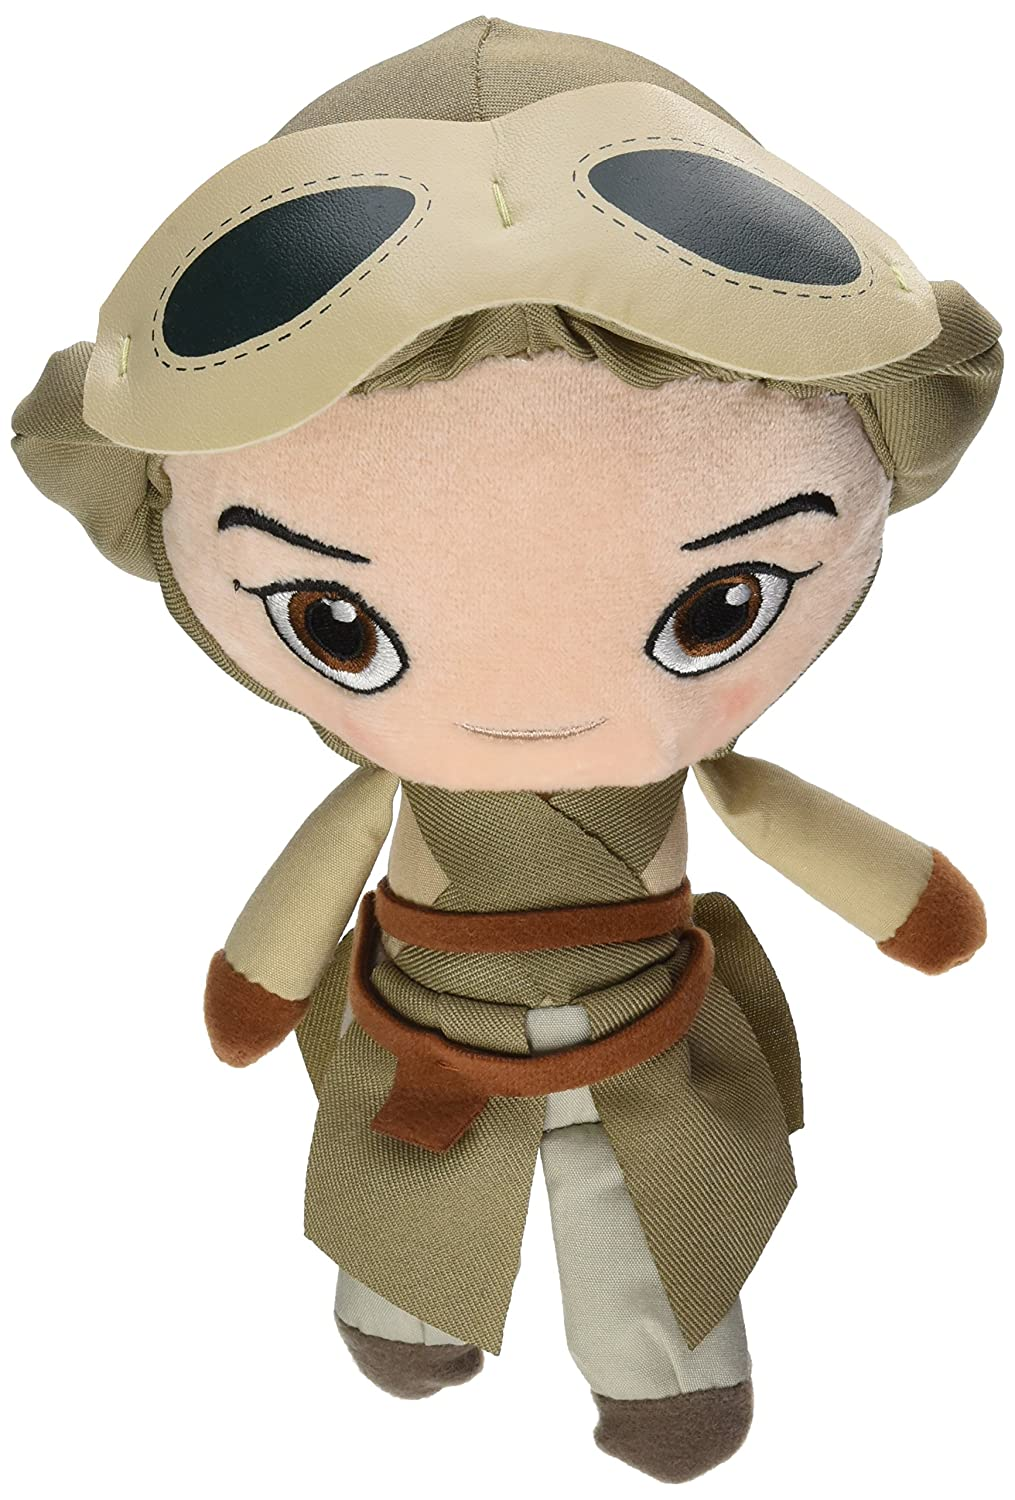 Funko - Peluche Star Wars Episode 7 - Rey Plushies 18cm - 0889698111003: Amazon.es: Juguetes y juegos